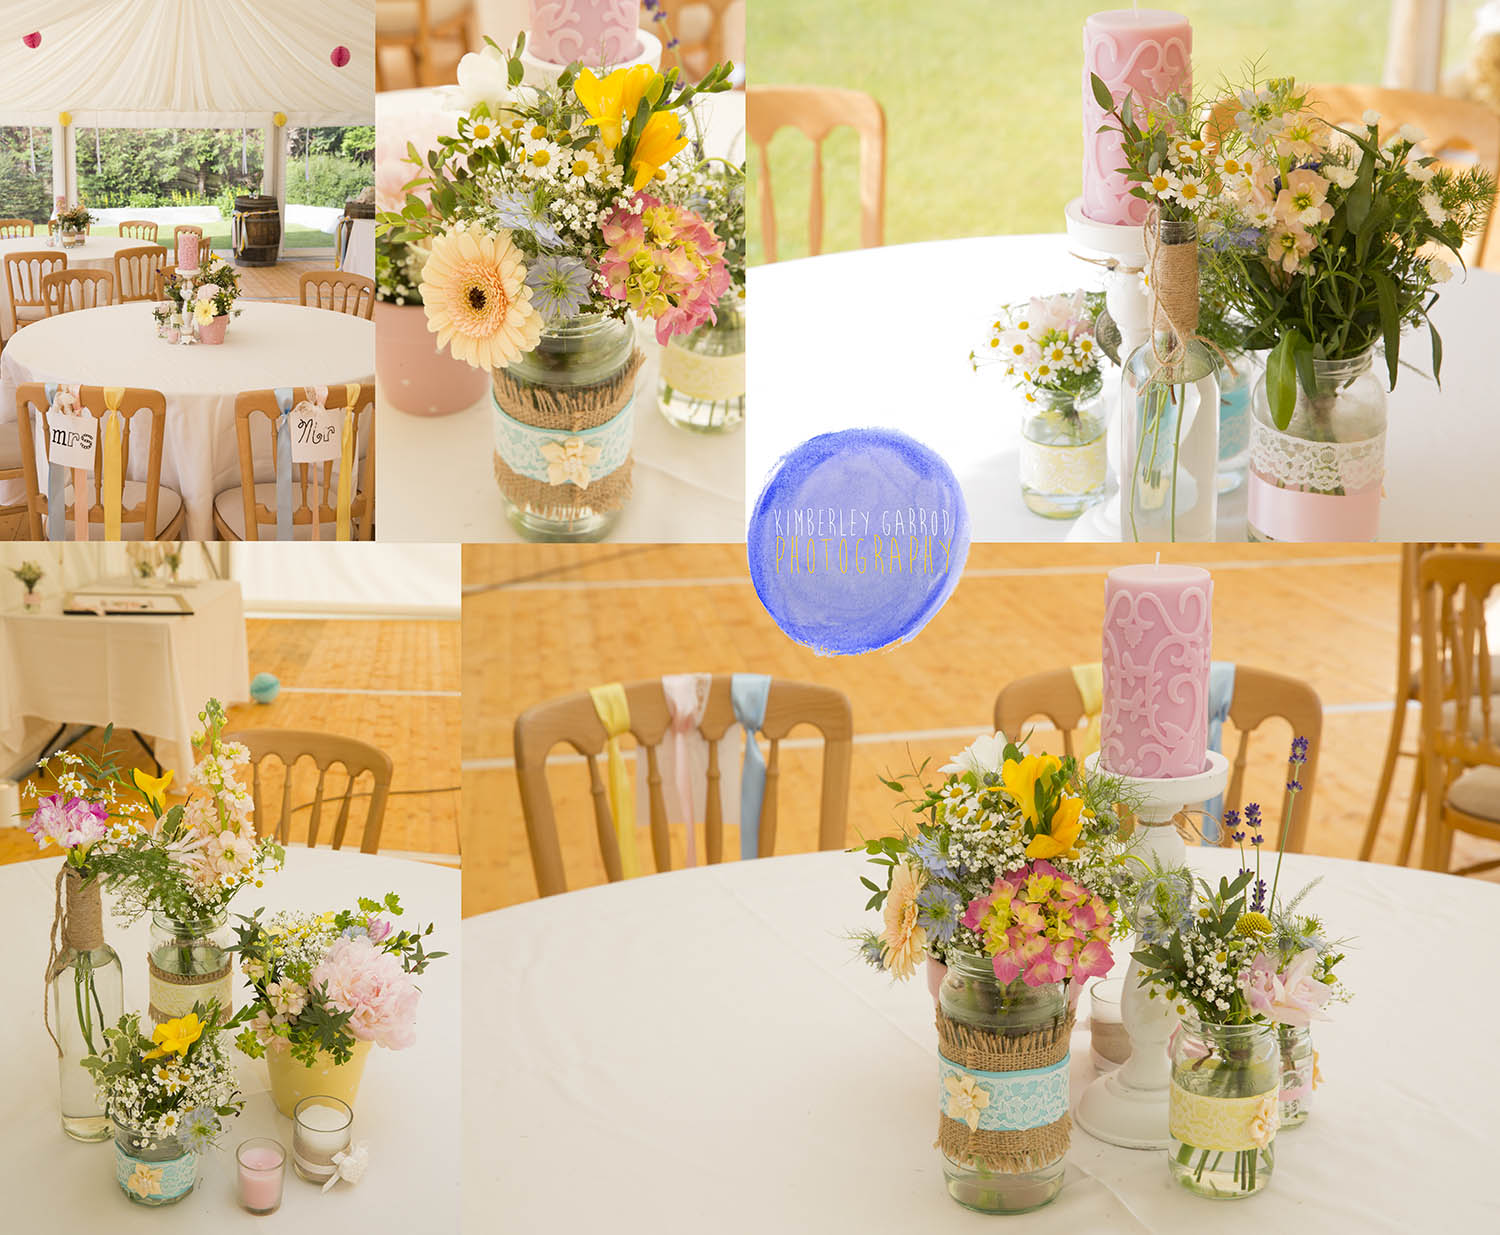 Luv Flowers Garden Party Ideas Kimberley Garrod photography